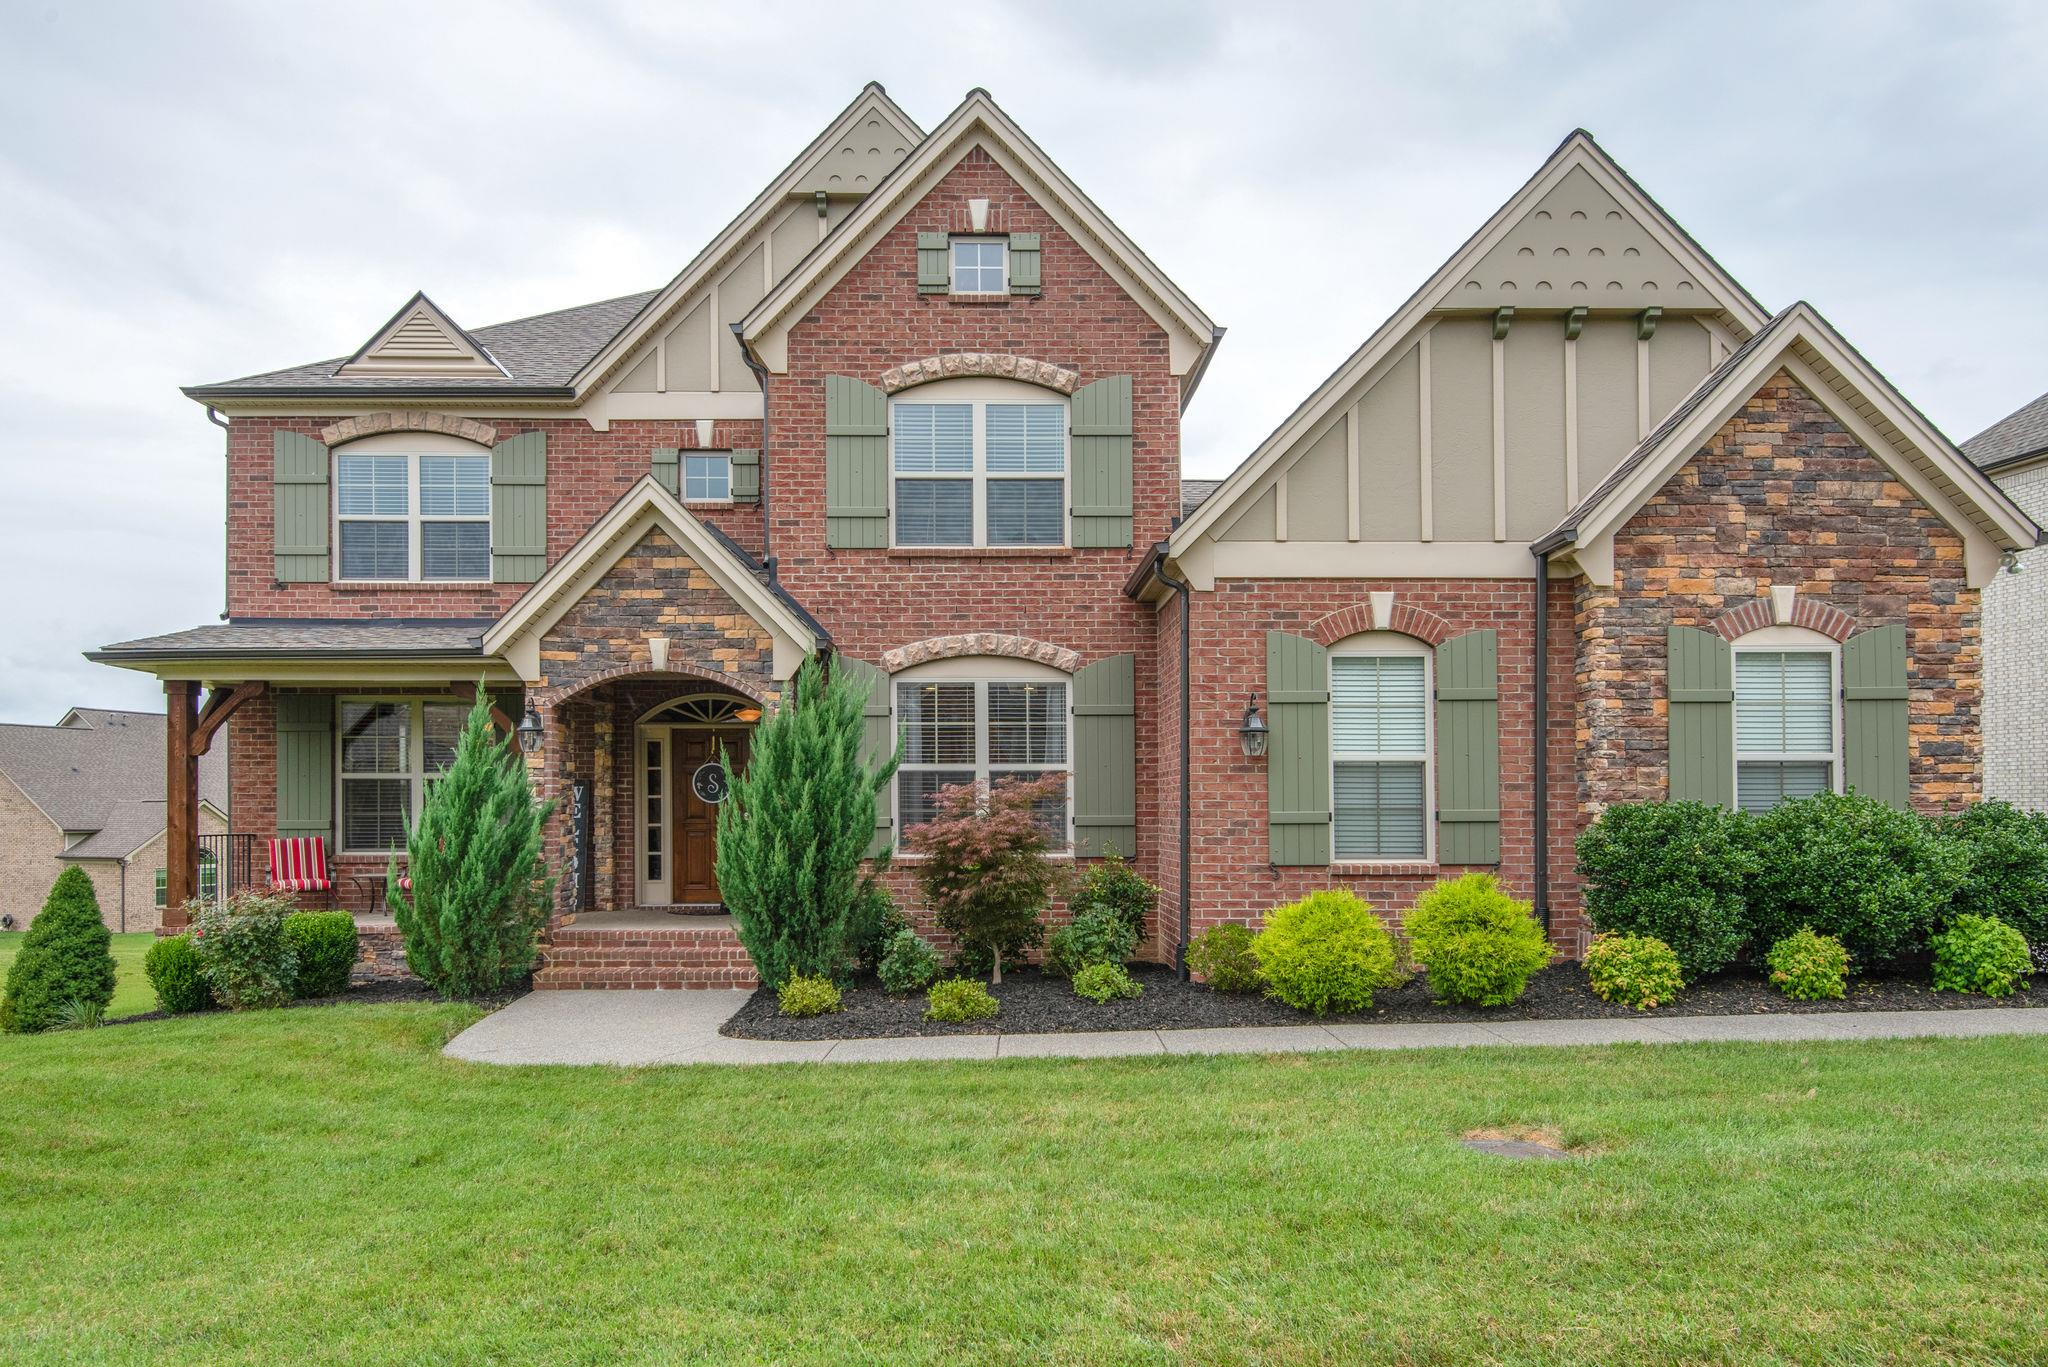 7005 Marwood Dr, College Grove, TN 37046 - College Grove, TN real estate listing